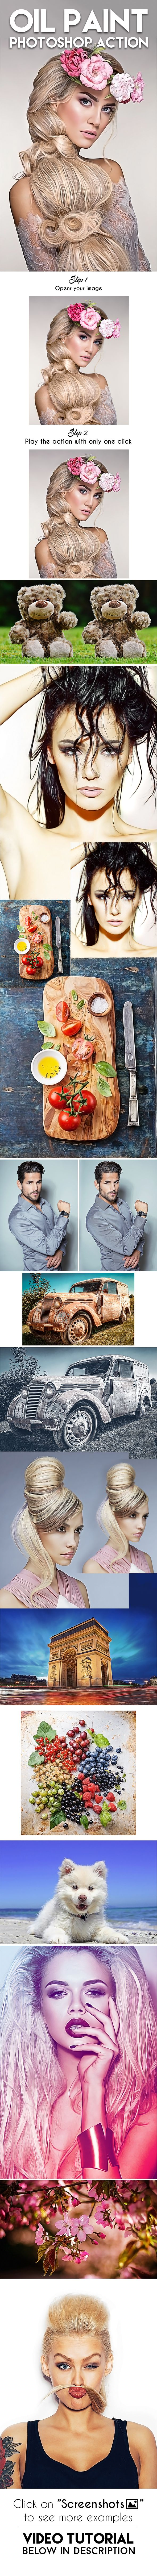 Oil Paint Photoshop Action - Photo Effects Actions Download here: https://graphicriver.net/item/oil-paint-photoshop-action/19692319?ref=classicdesignp